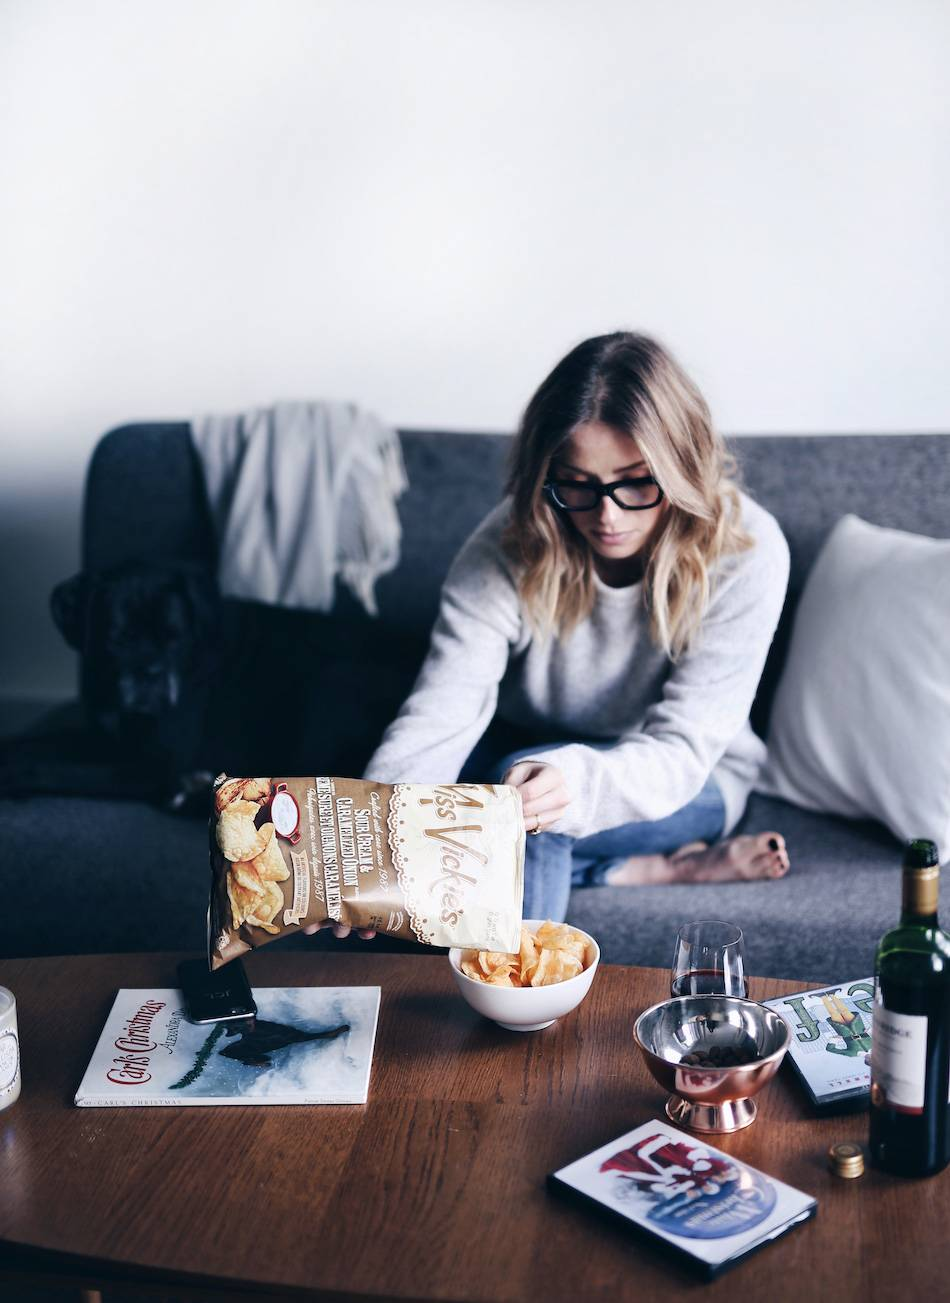 style-and-beauty-blogger-jill-lansky-of-the-august-diaries-top-5-favourite-christmas-movies-and-snacks-miss-vickies-and-red-wine